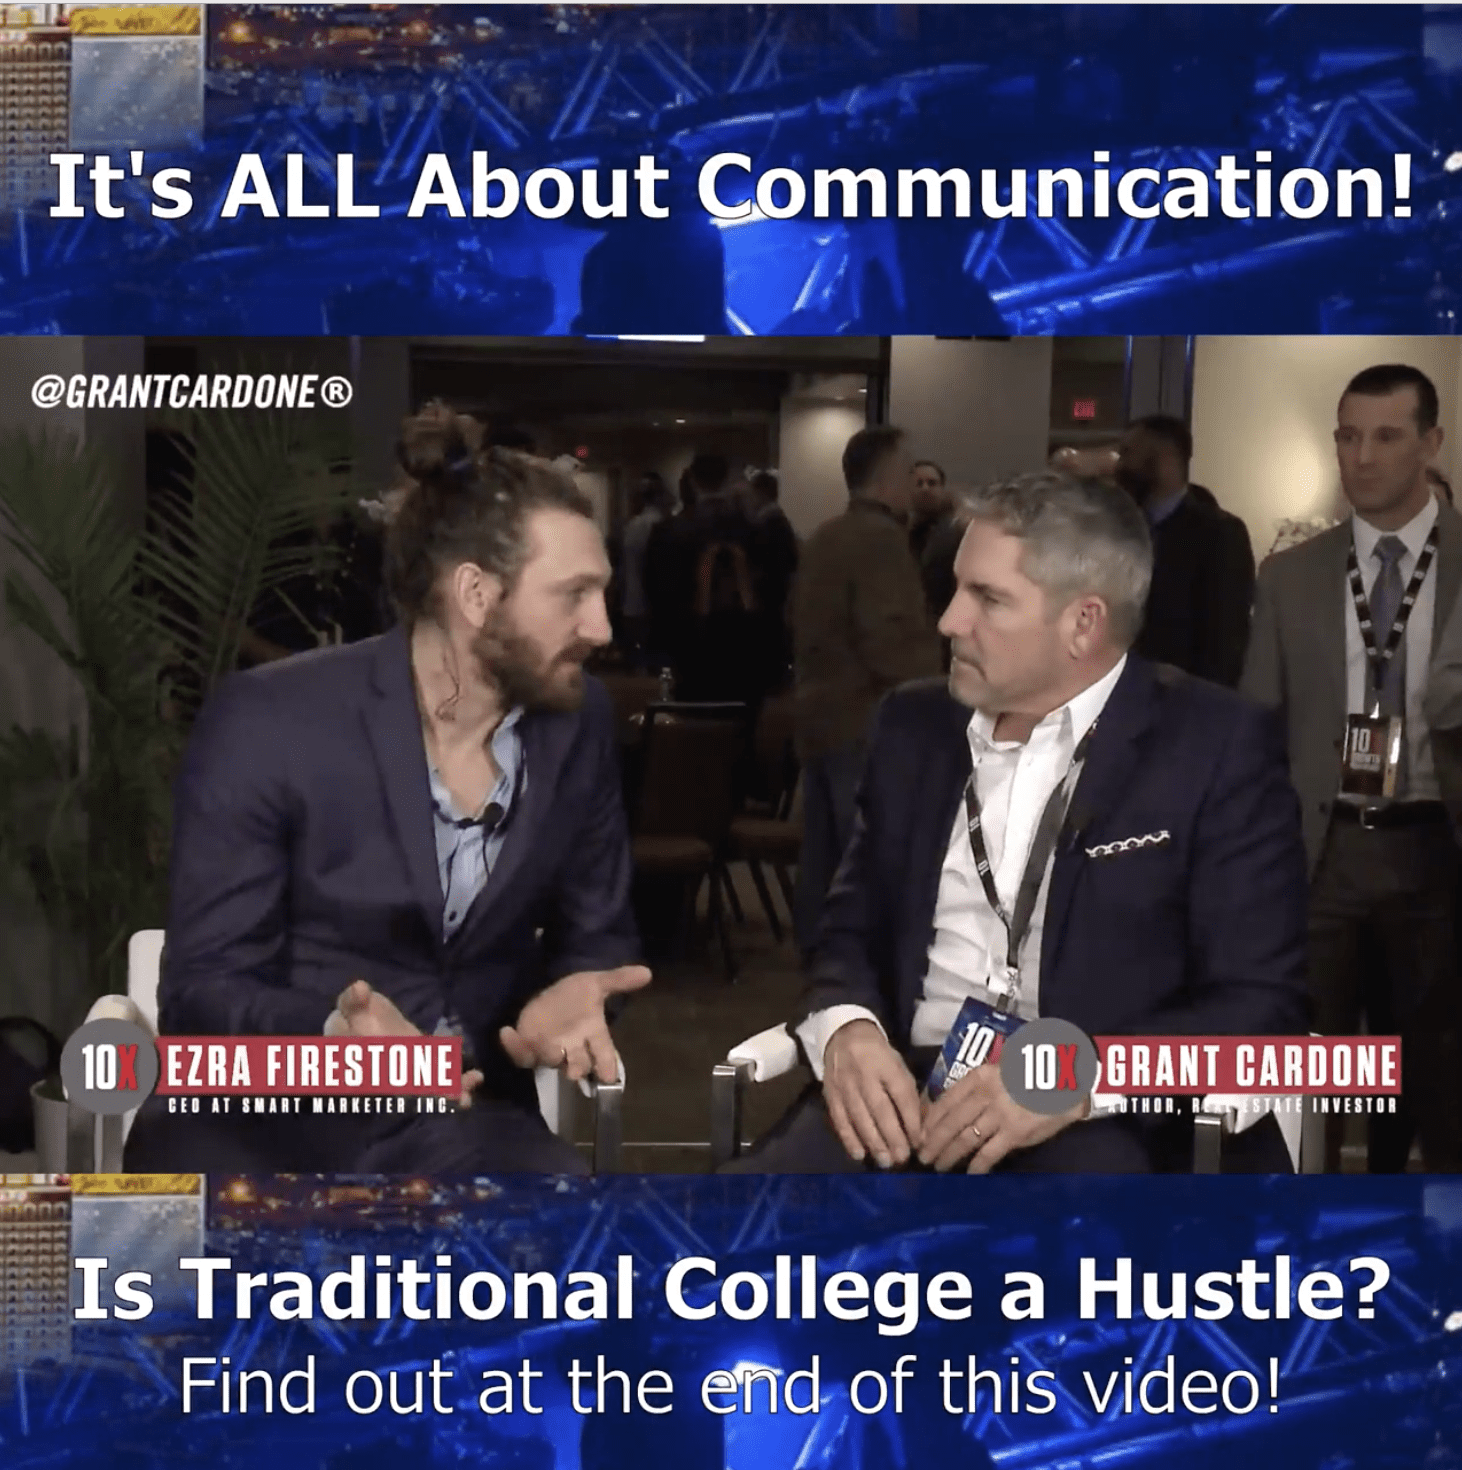 Ezra Firestone with Grant Cardone